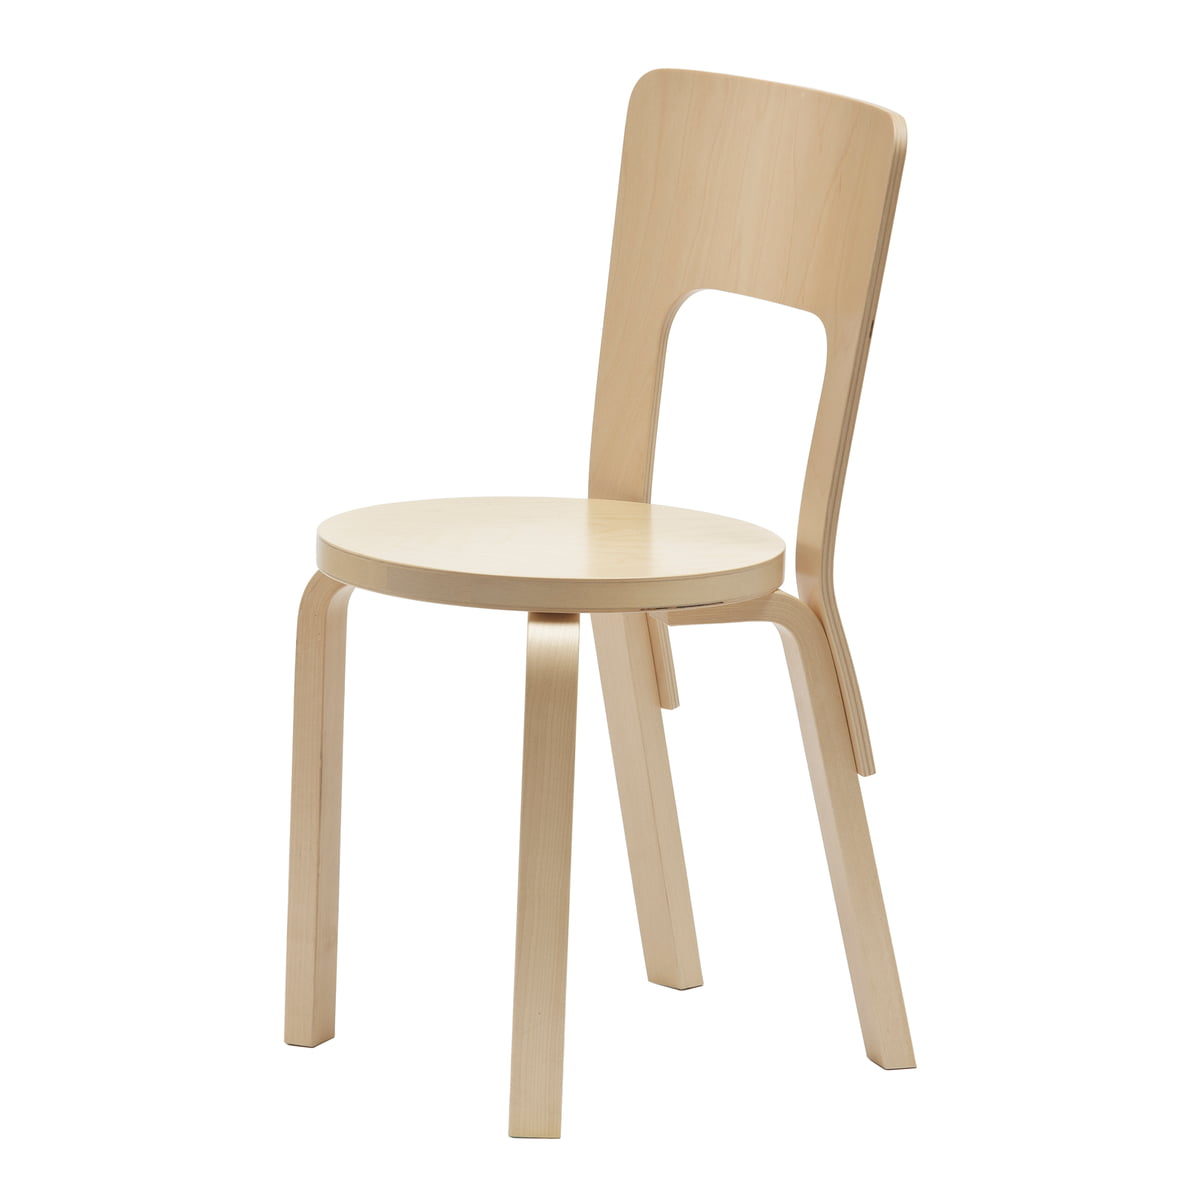 Chair 66 by artek in our shop for Chaise 66 alvar aalto